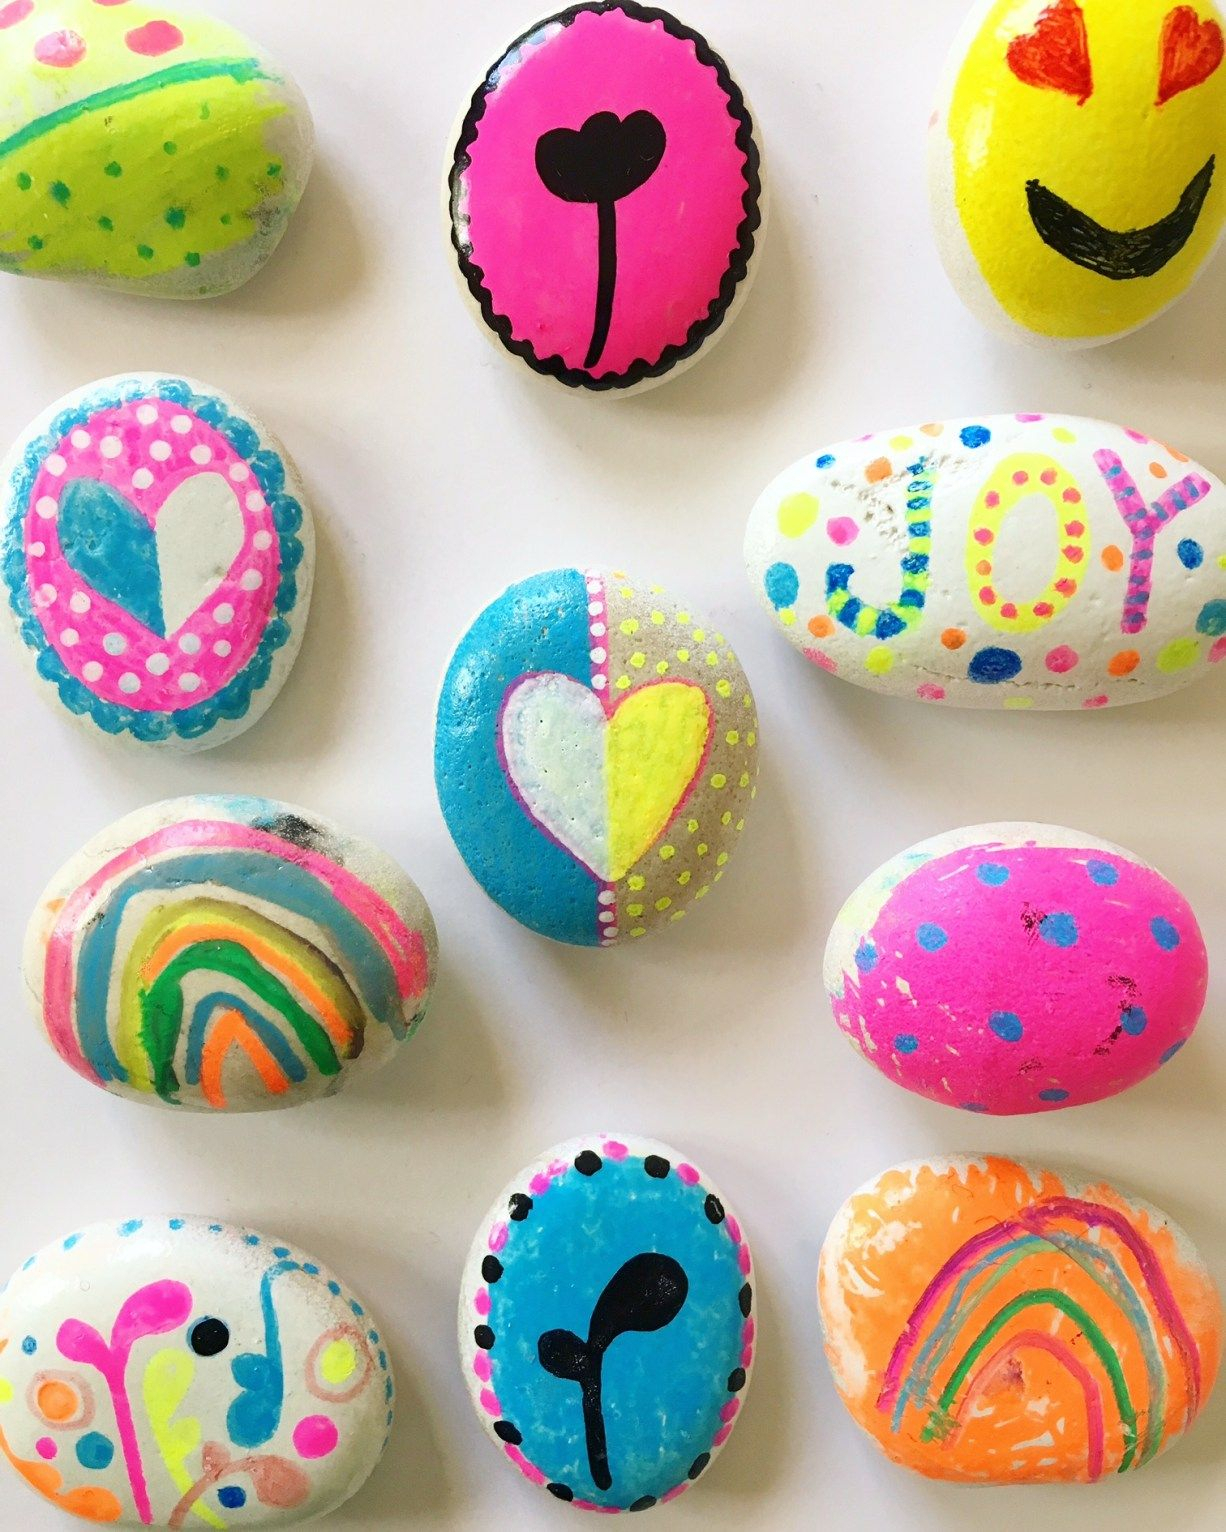 rock painting ideas for kids | crafts for kids | painted rocks kids